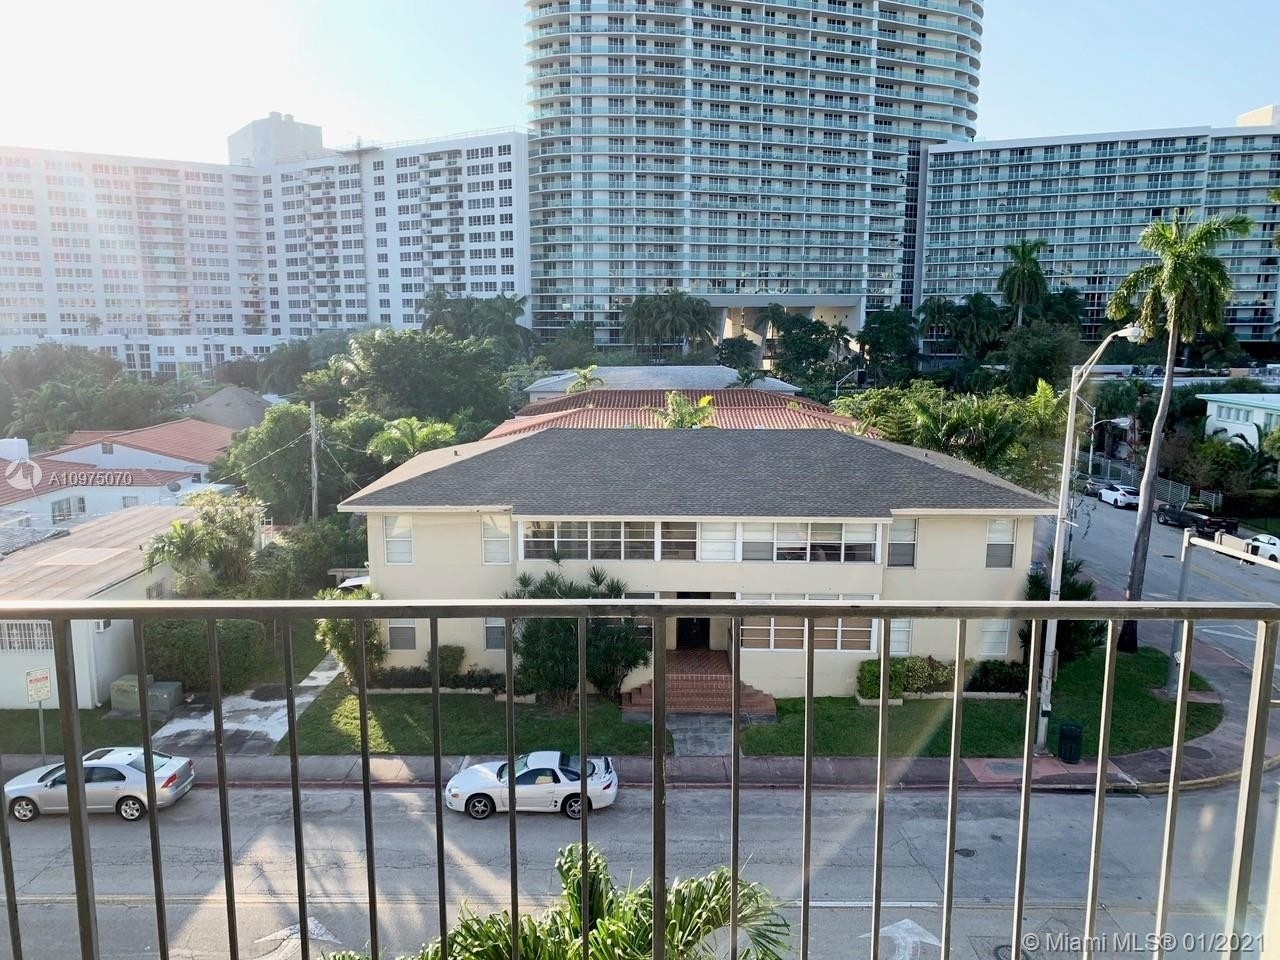 16. Condominiums for Sale at 1455 West Ave , 504 South Beach, Miami Beach, FL 33139